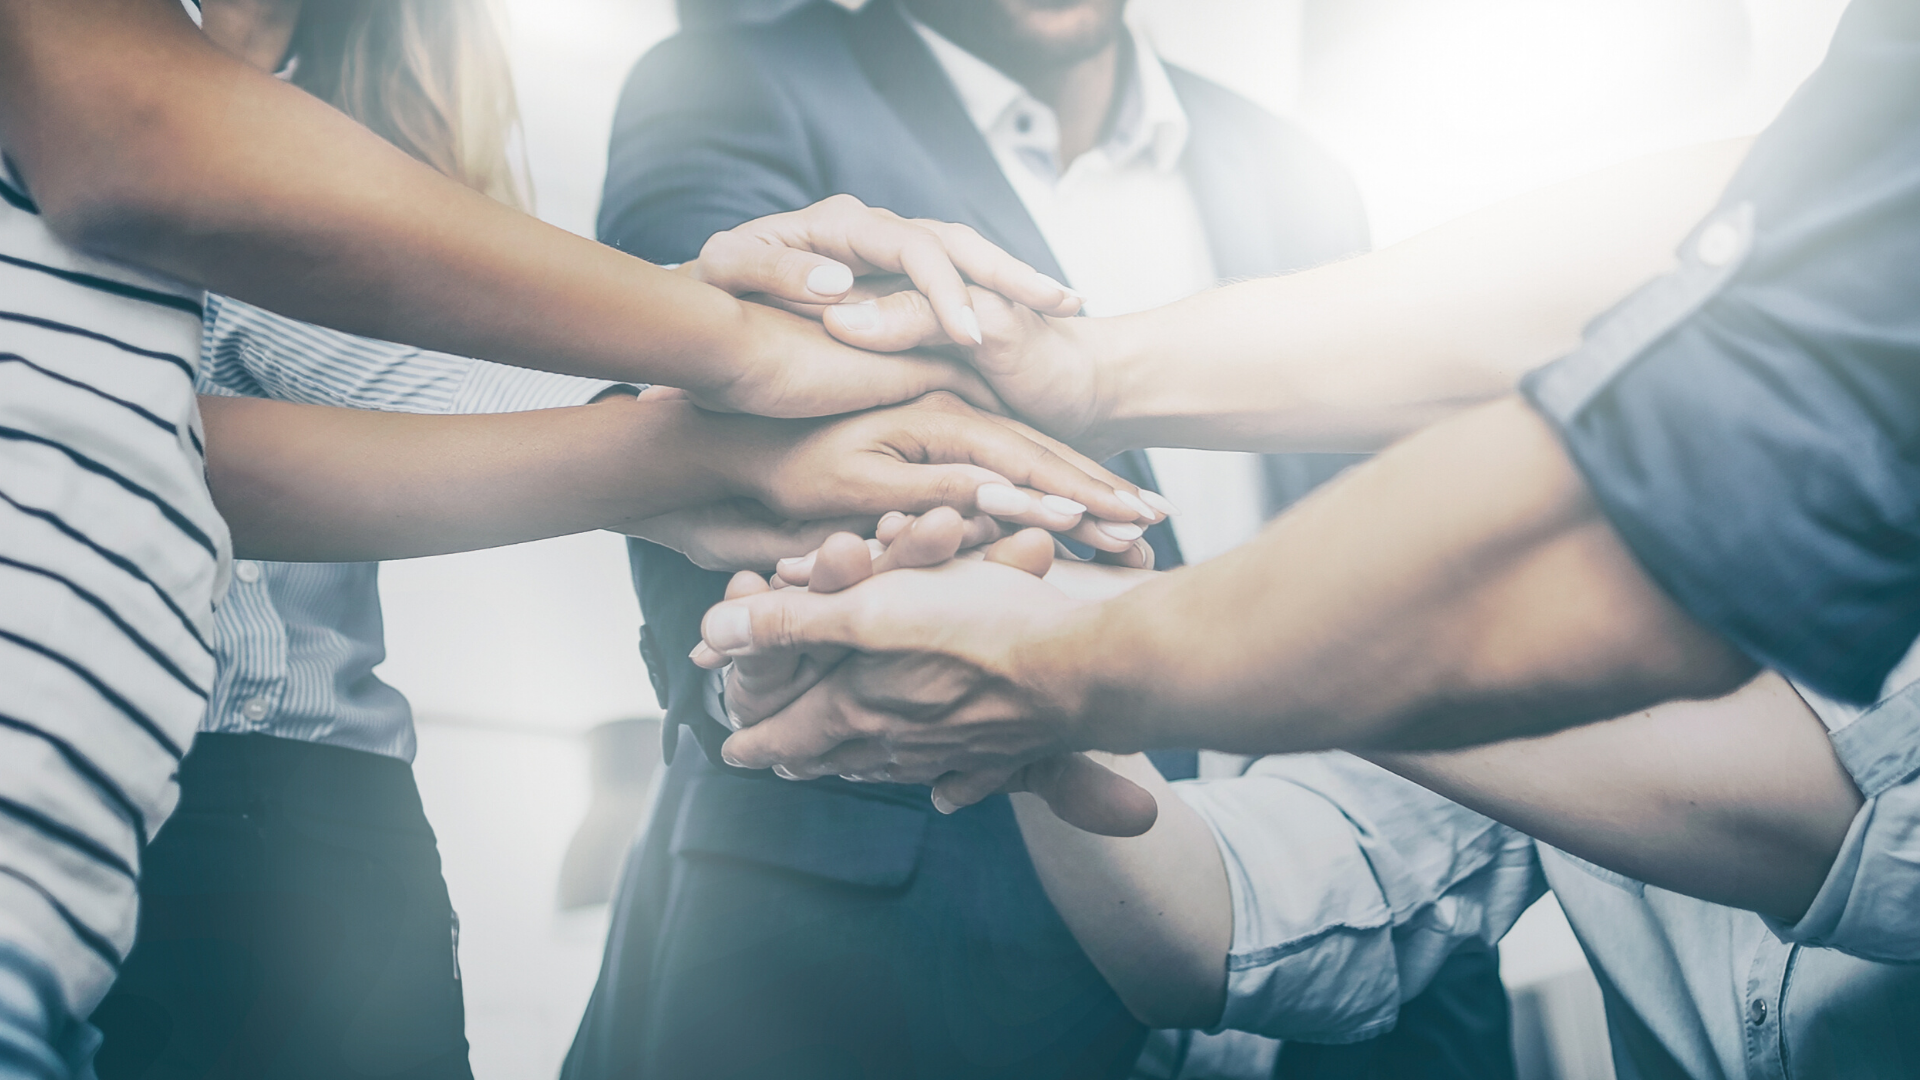 4 Tips to Help Your Business Build a Sense of Community